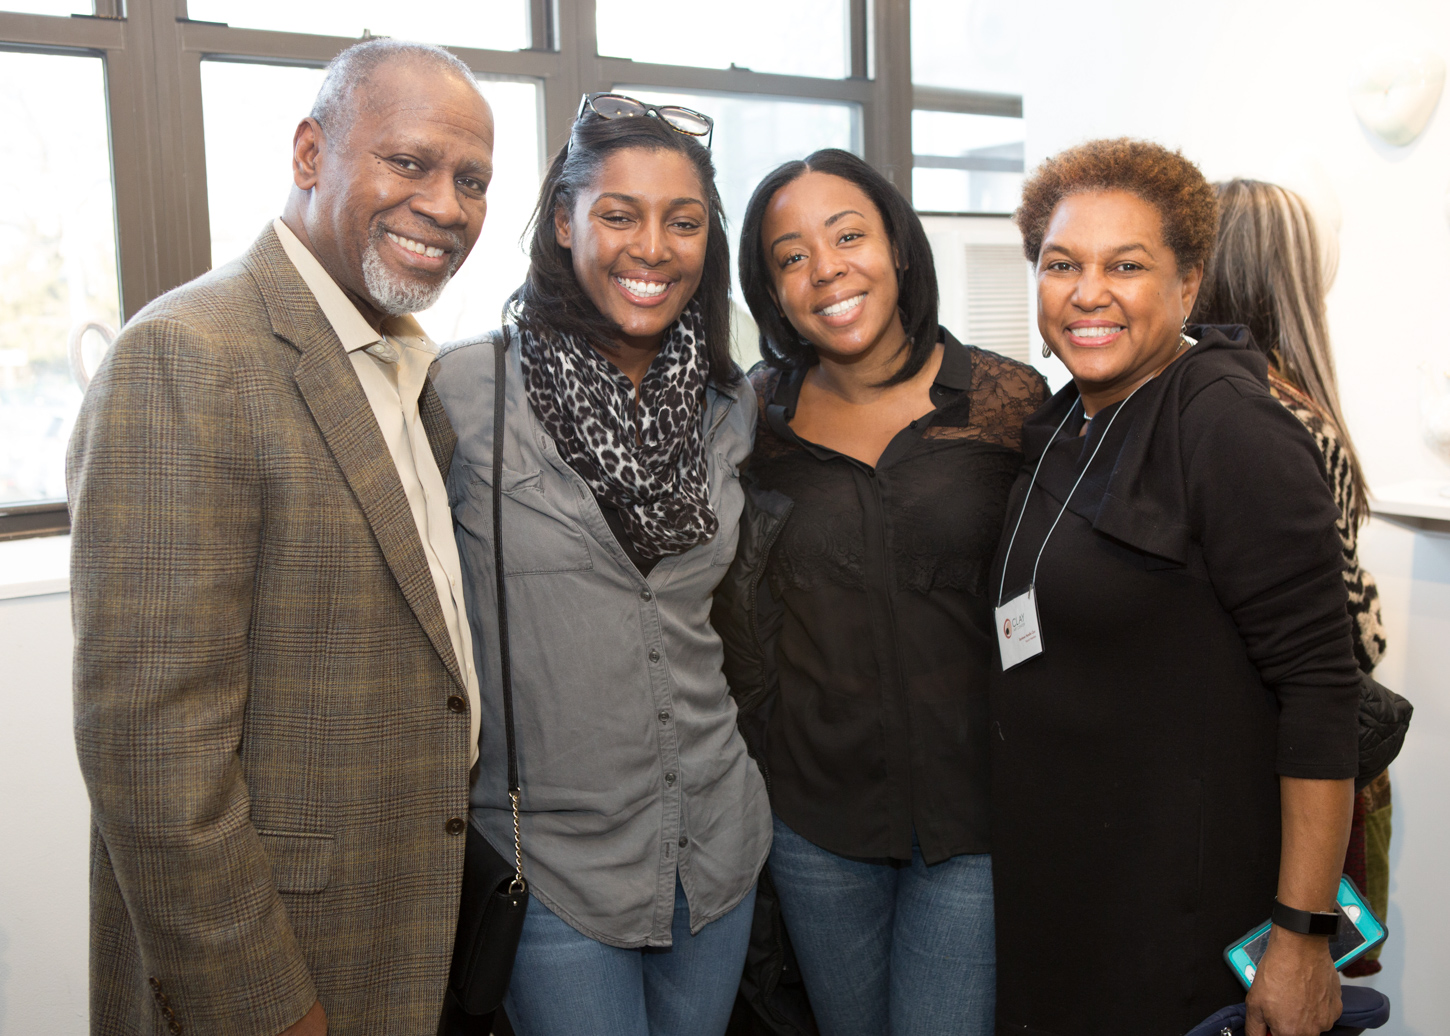 5D3_6320 Maurice and Michelle Cox, Dionne Moseley and Earlene Hardie Coxw.jpg